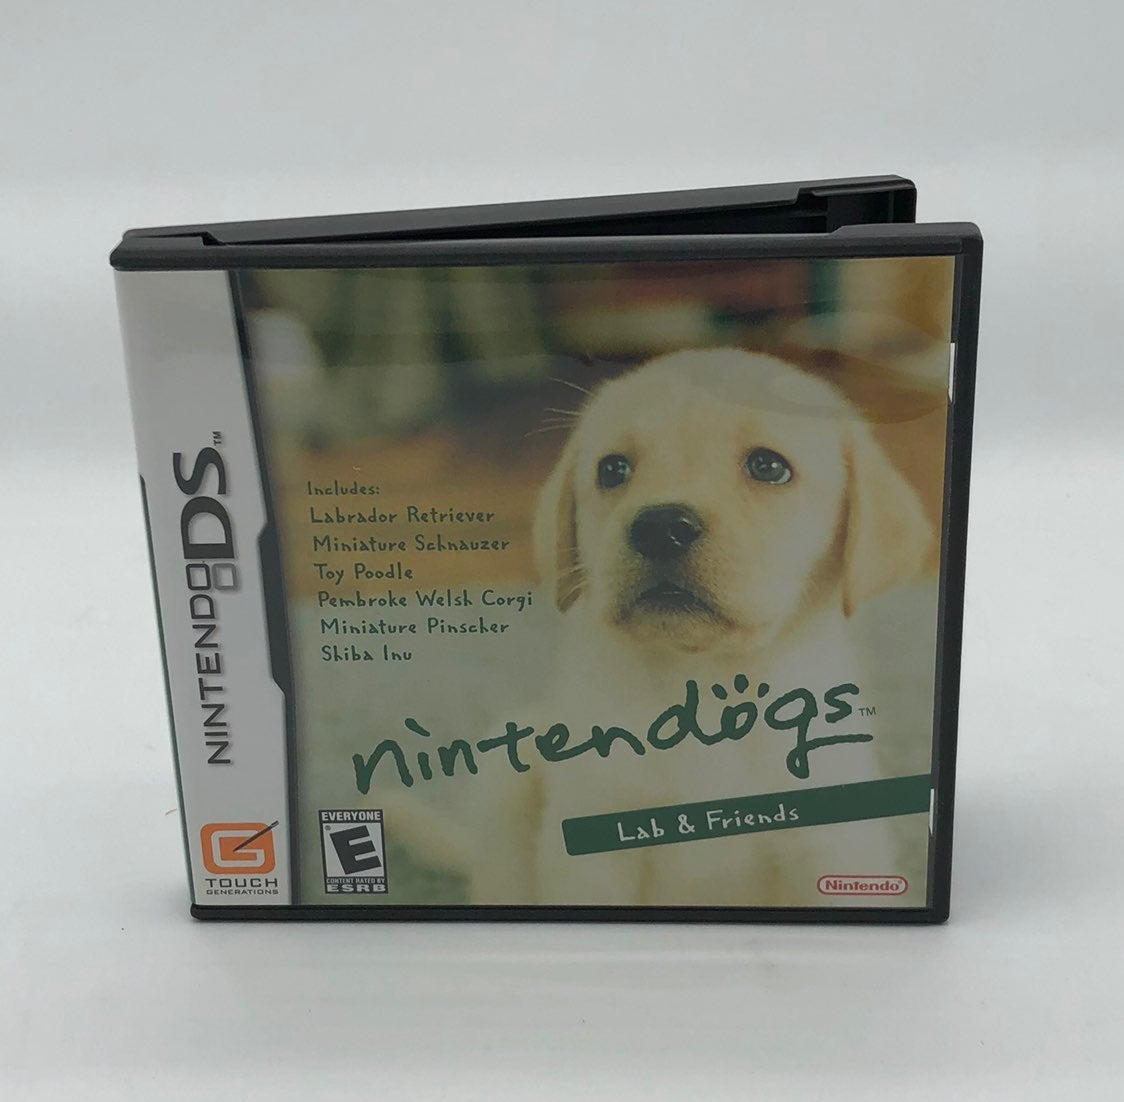 Nintendogs: Lab & Friends on Nintendo DS